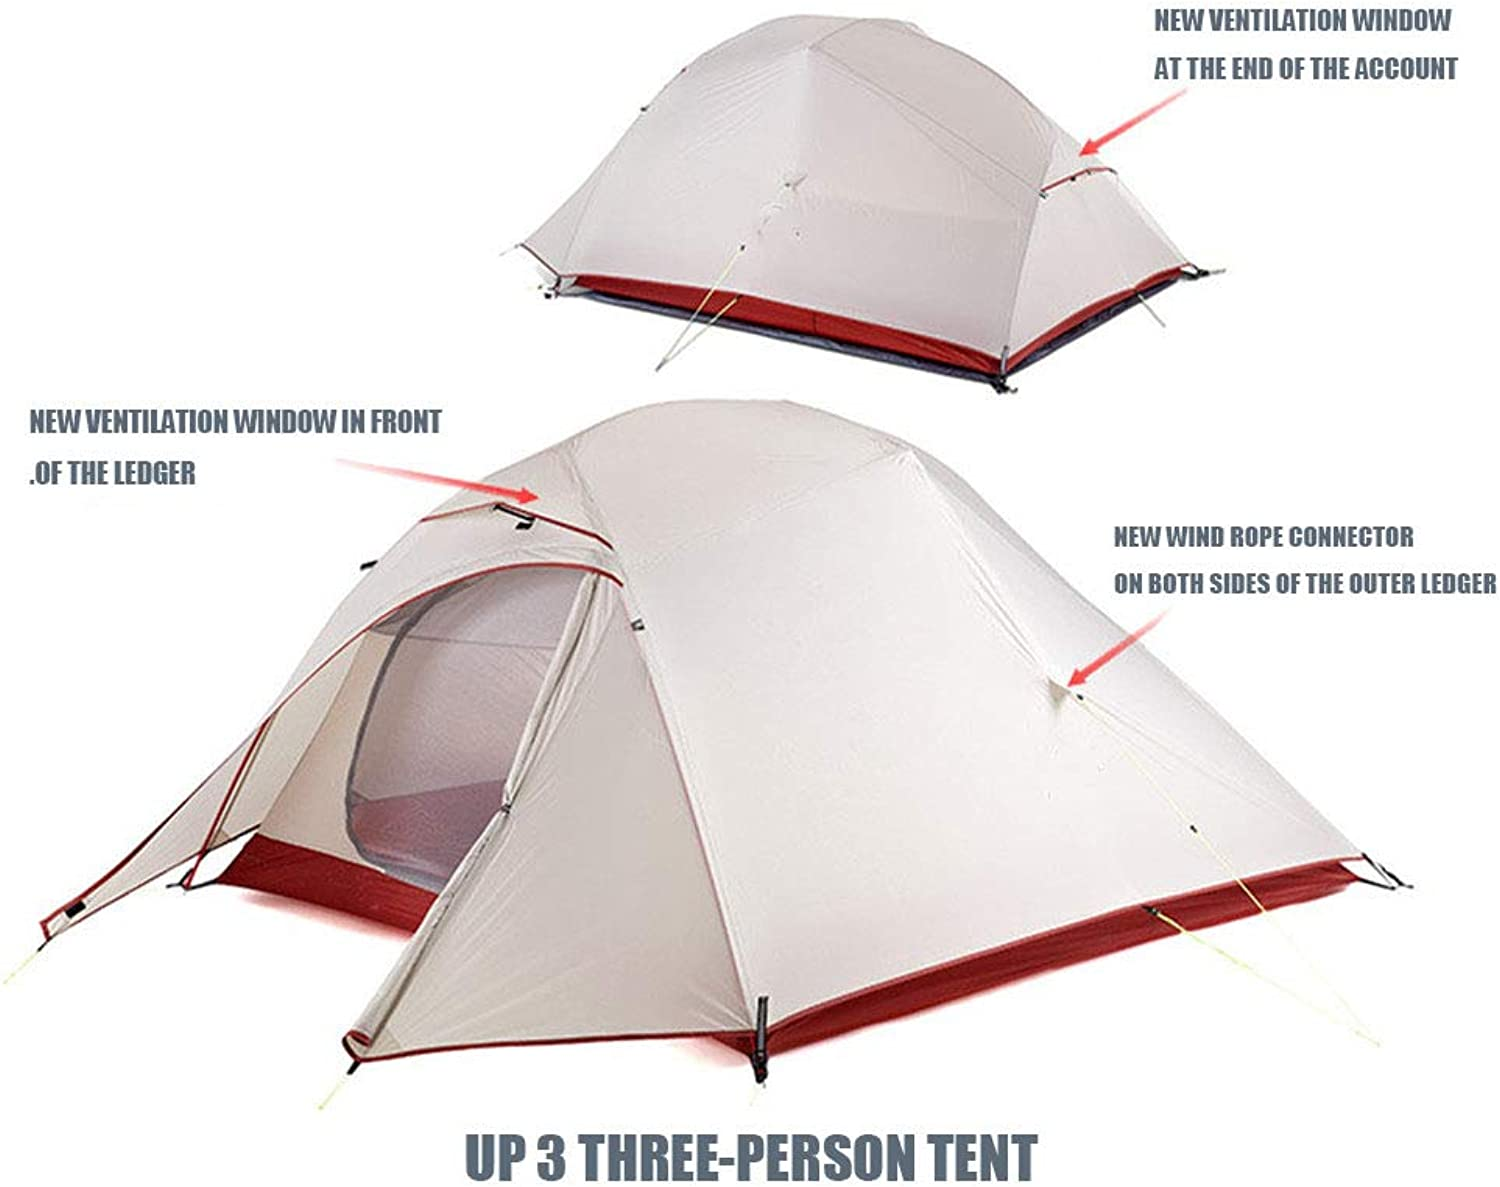 LIUSIYU 4 Season Tent 3 Person Waterproof Windproof Ultralight Camping Breathable Window Outdoor Dome Backpacking Tent